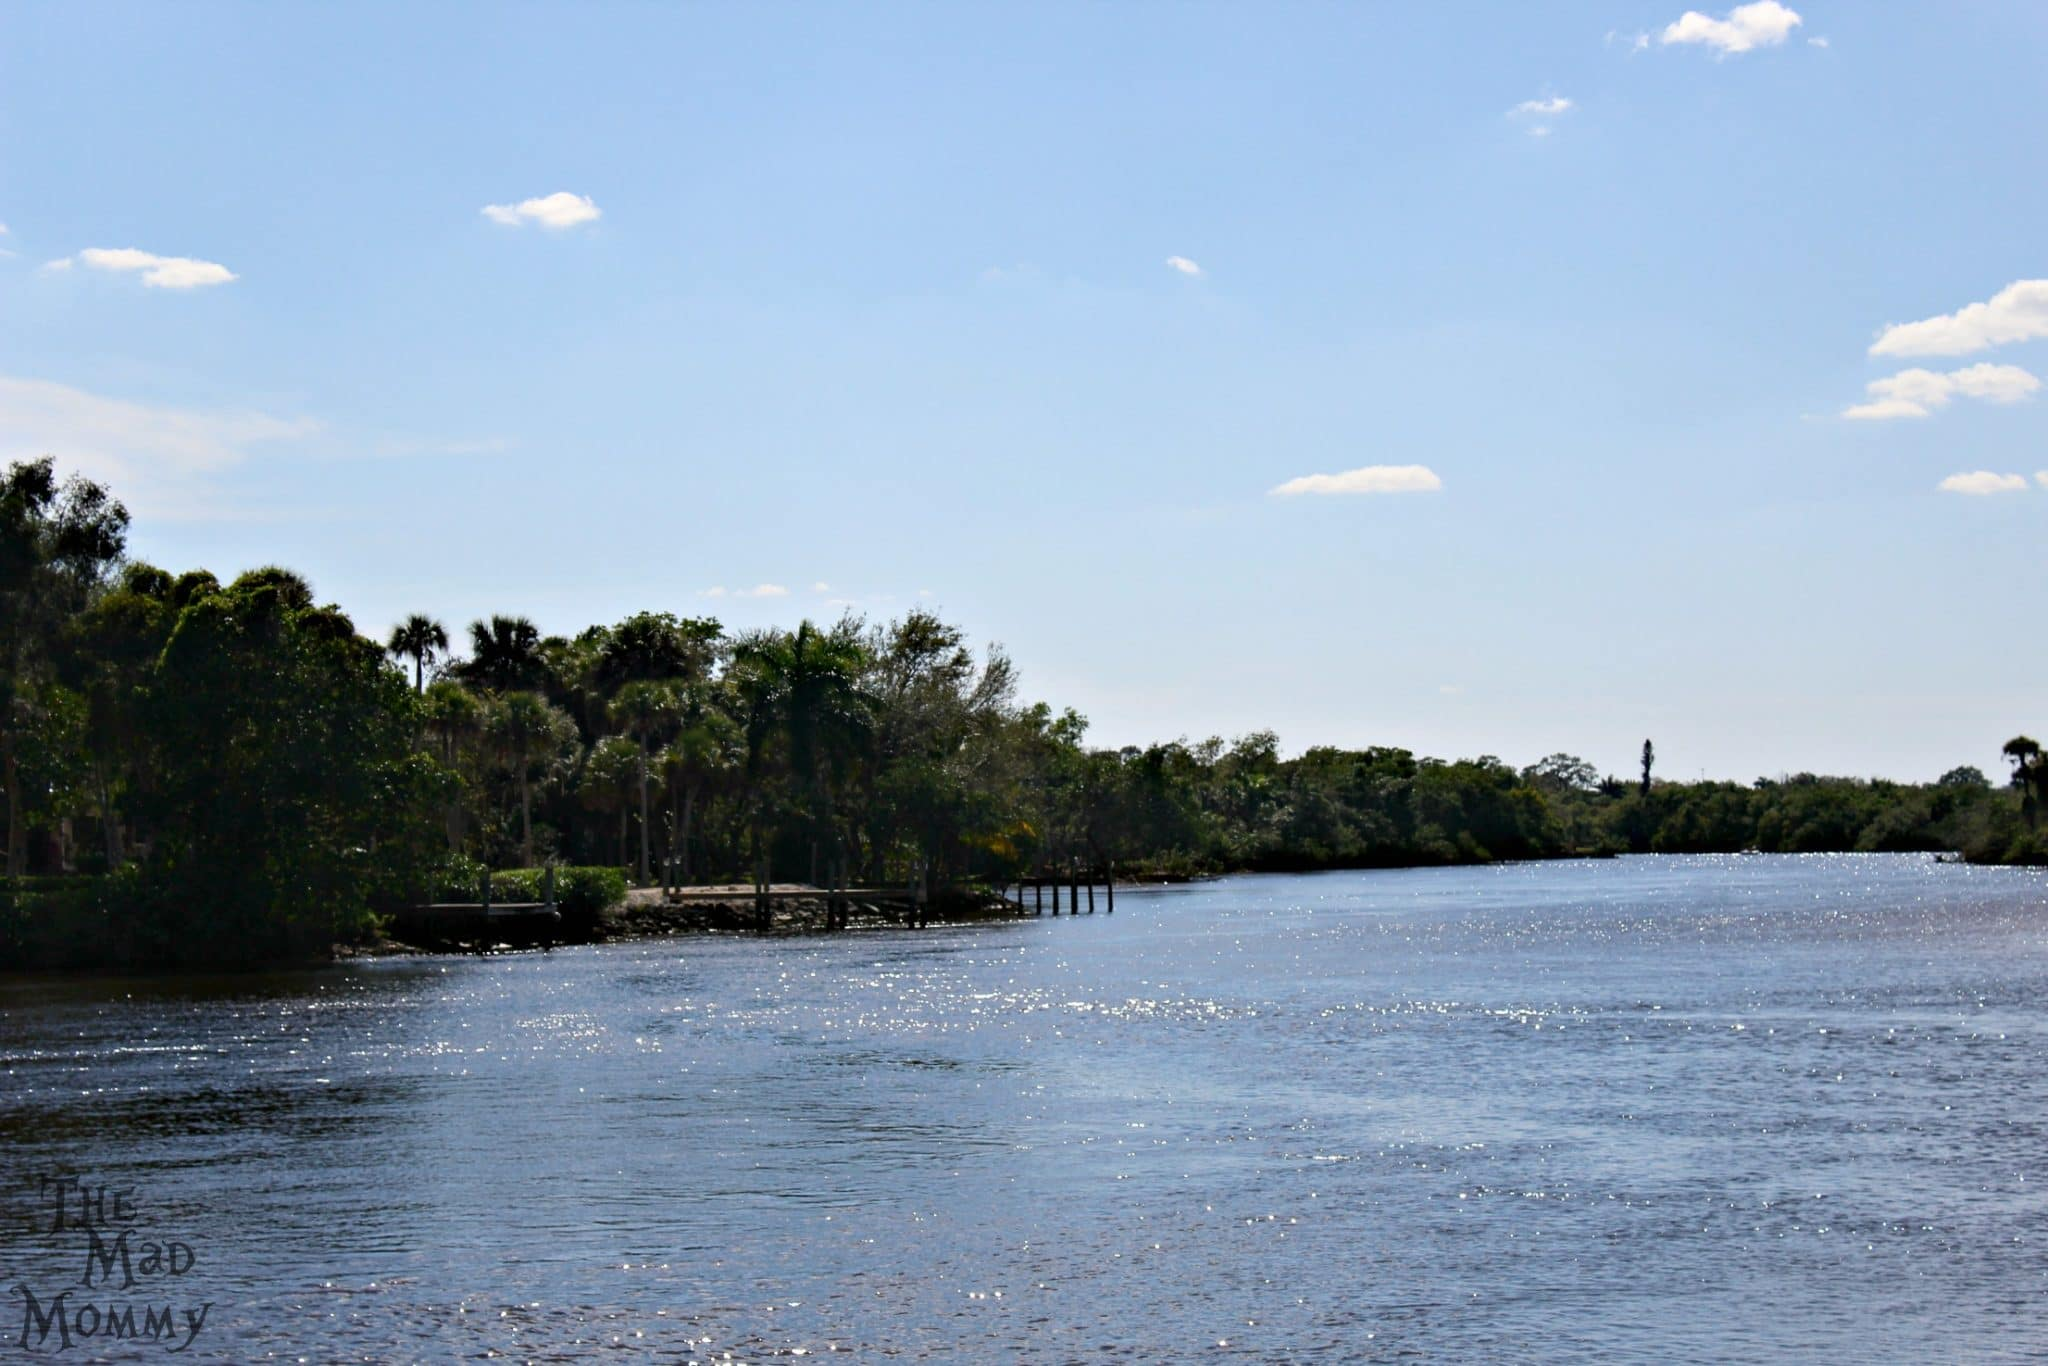 The canals and waterways at Manatee Park are beautiful.